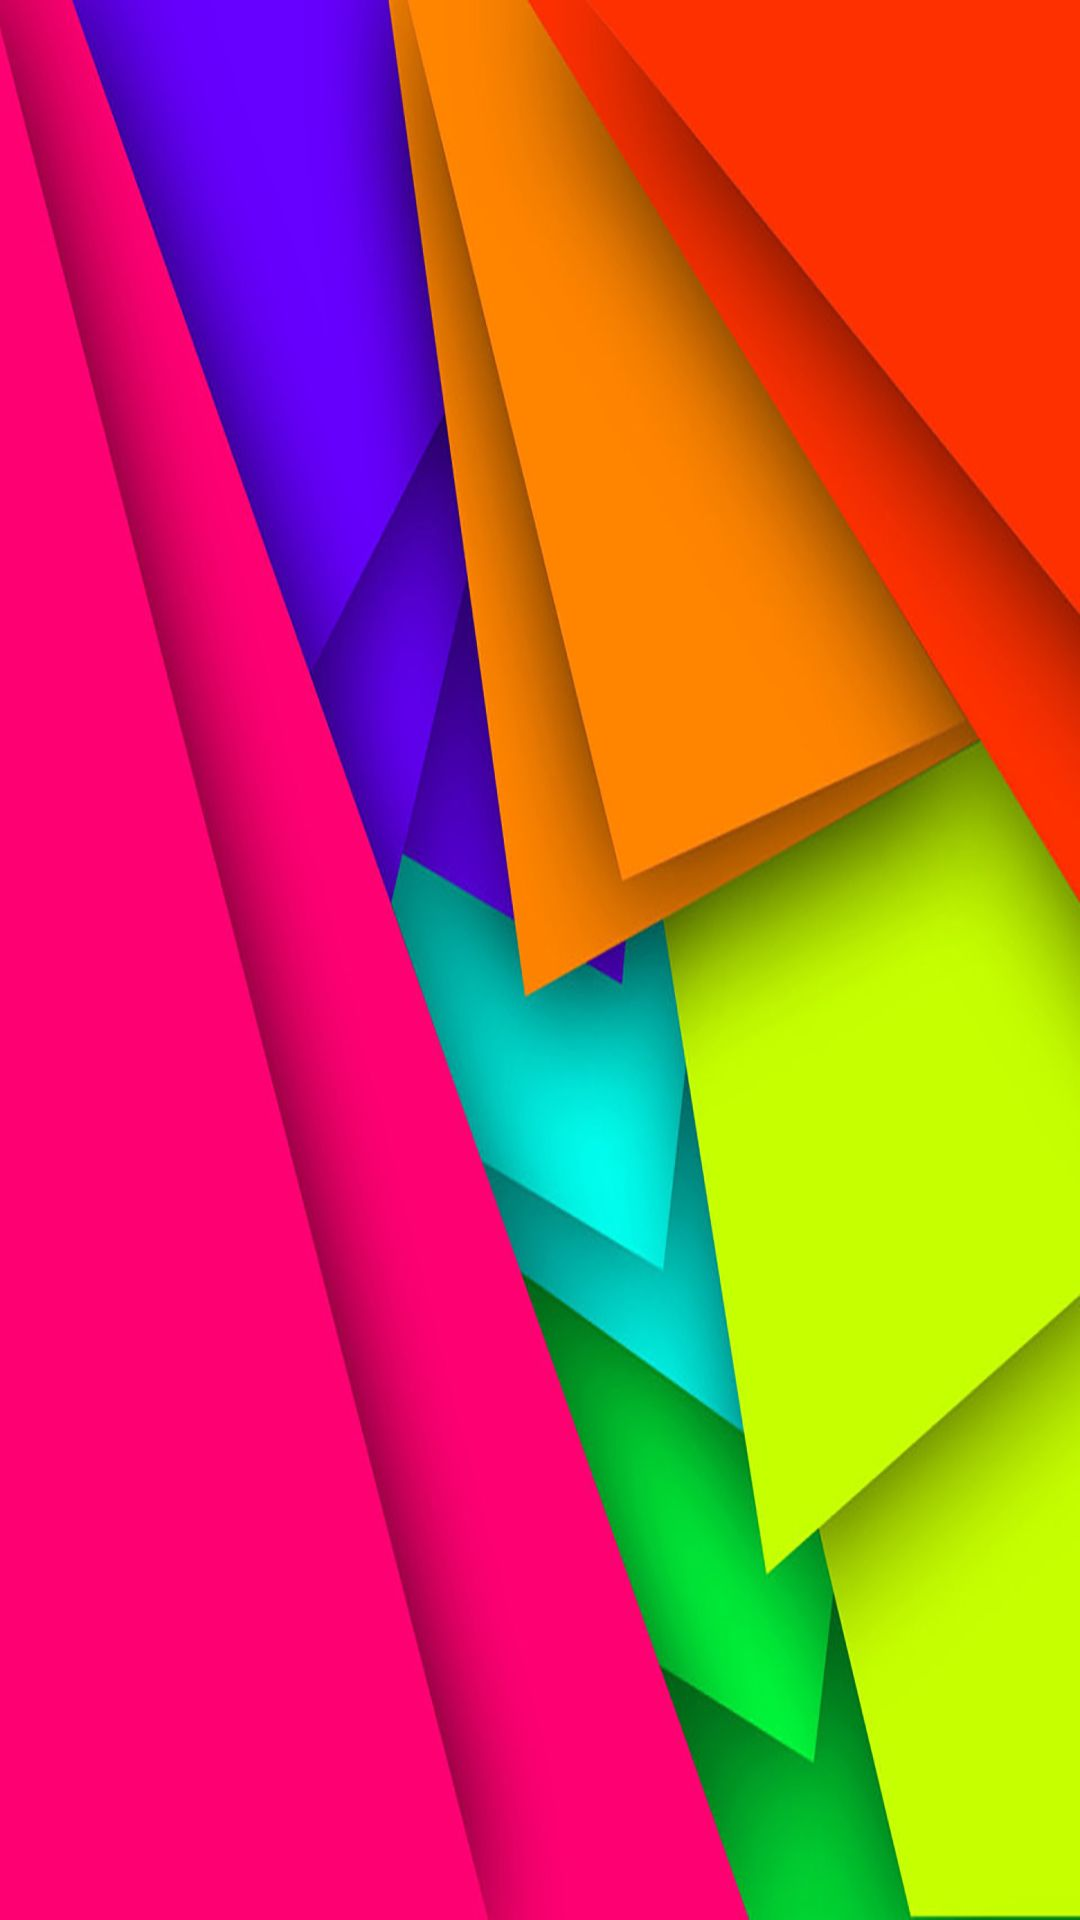 Bold Colorful Abstract Art Wallpaper | *Abstract and ...